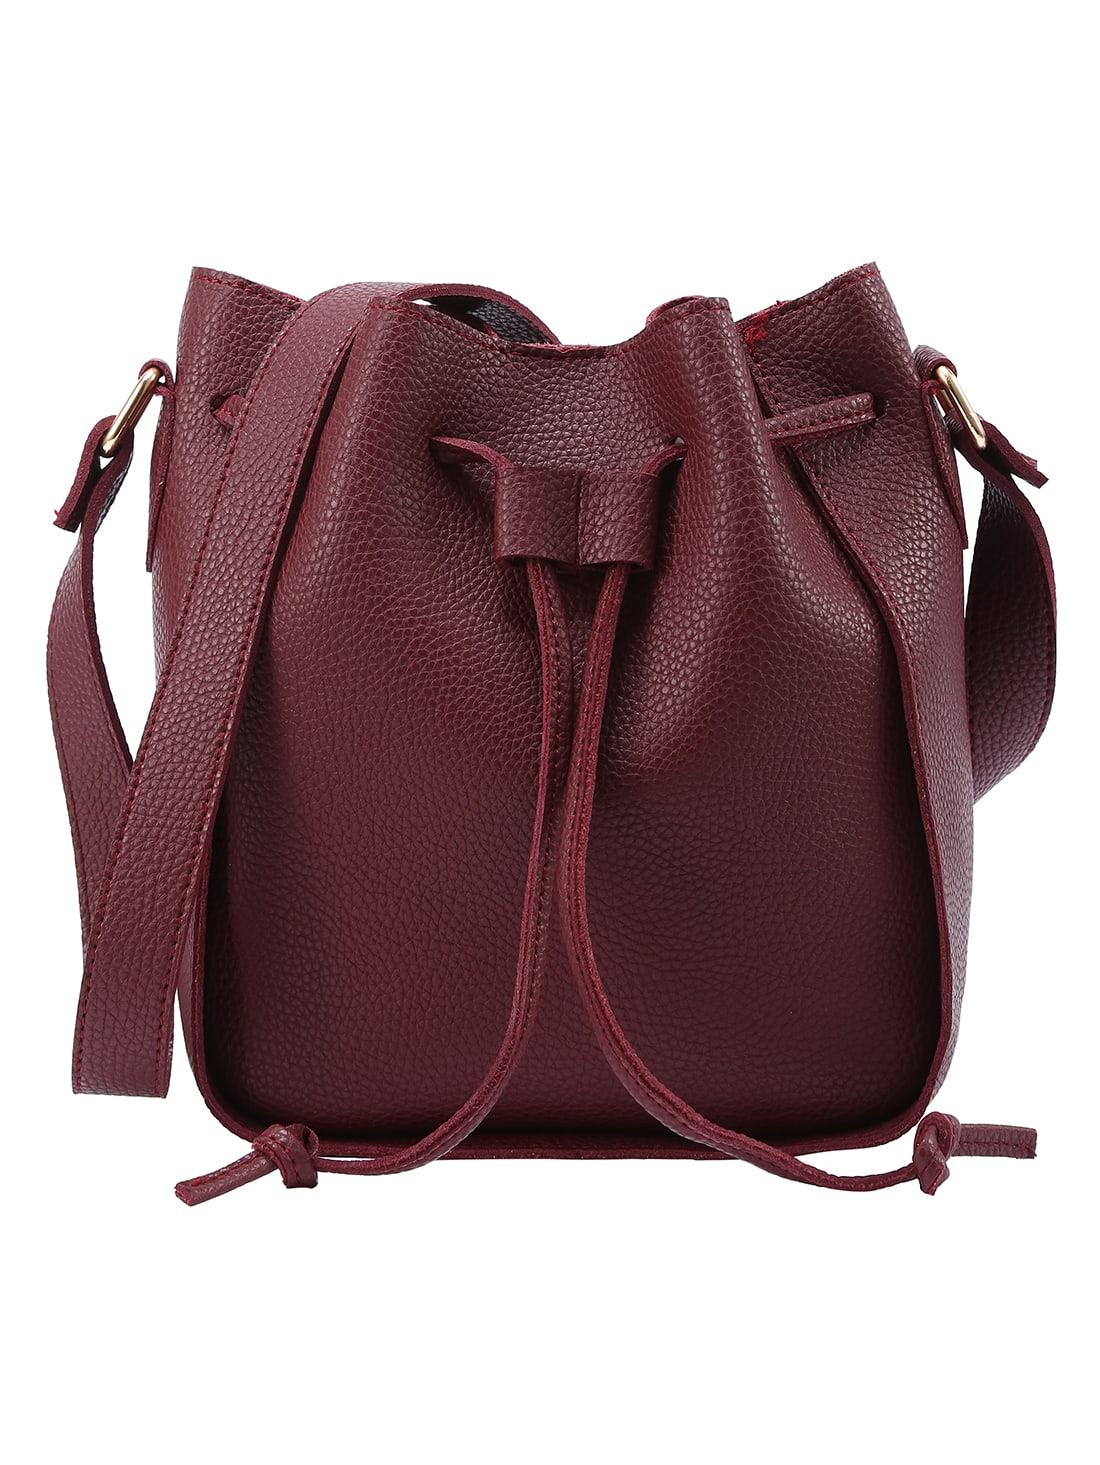 Embossed Faux Leather Drawstring Bucket Bag - Burgandy